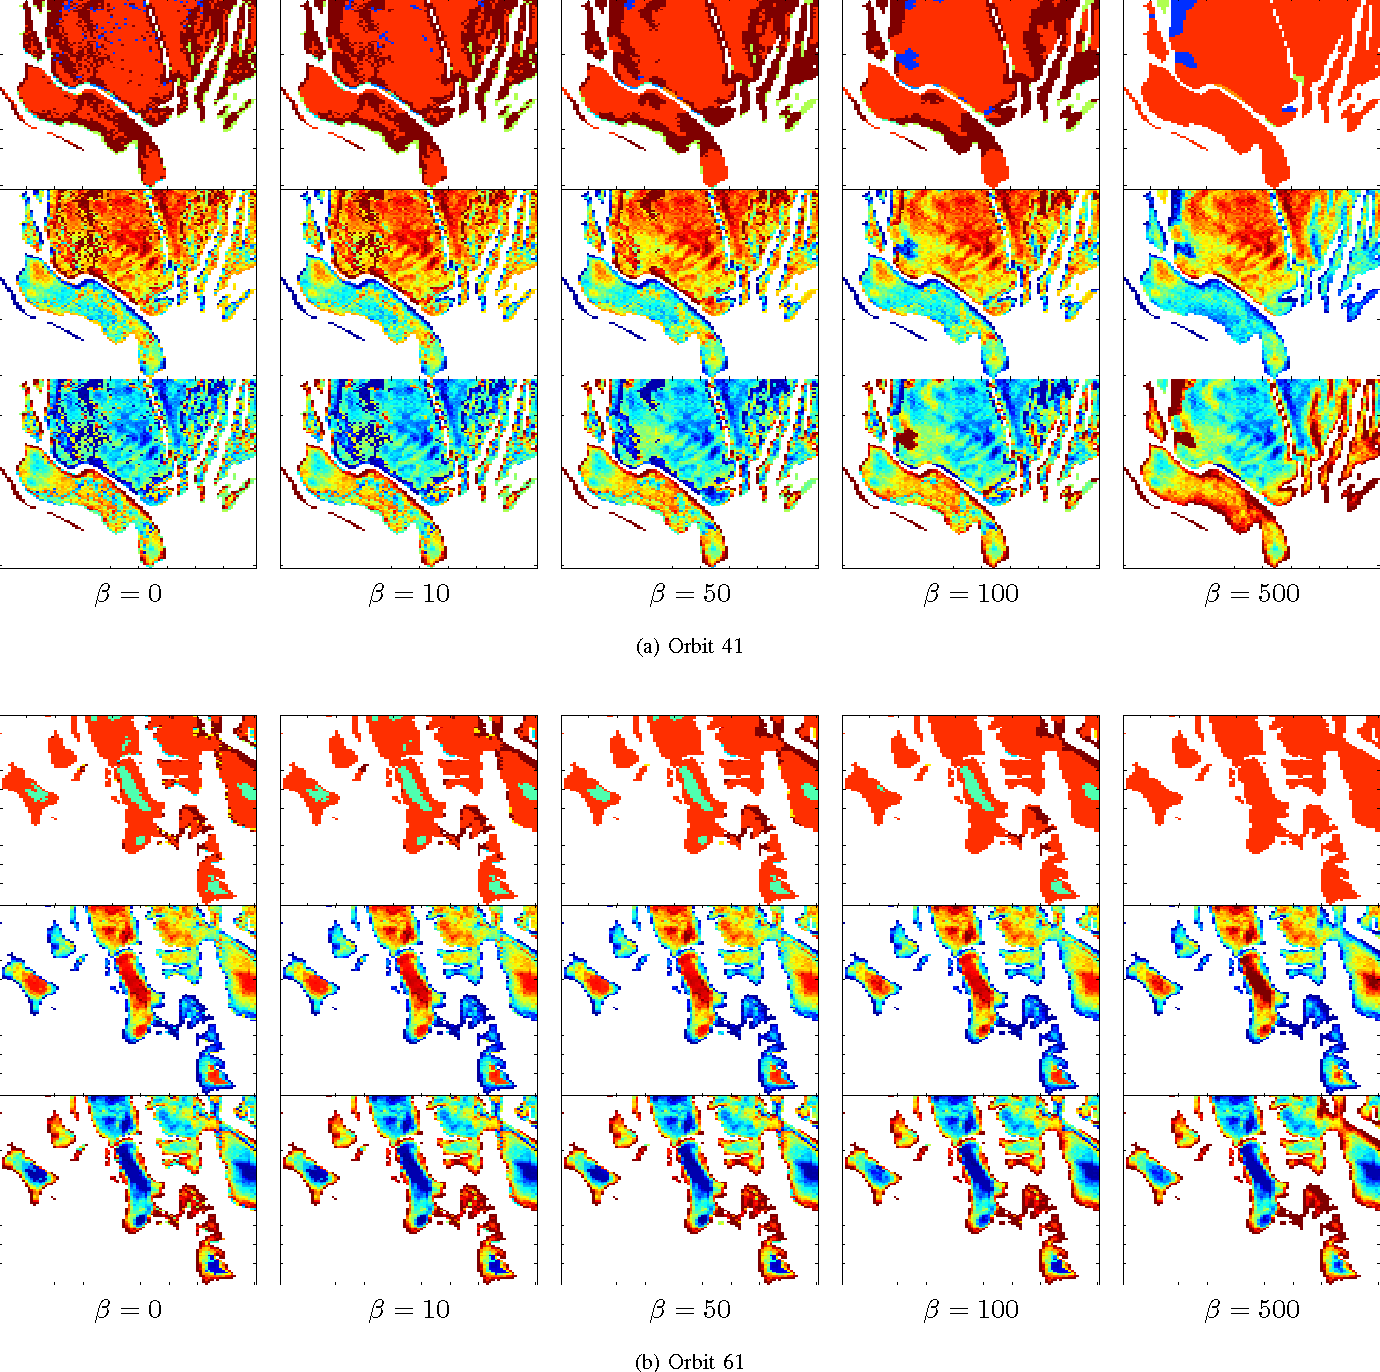 Figure 2 for Hyper-Spectral Image Analysis with Partially-Latent Regression and Spatial Markov Dependencies